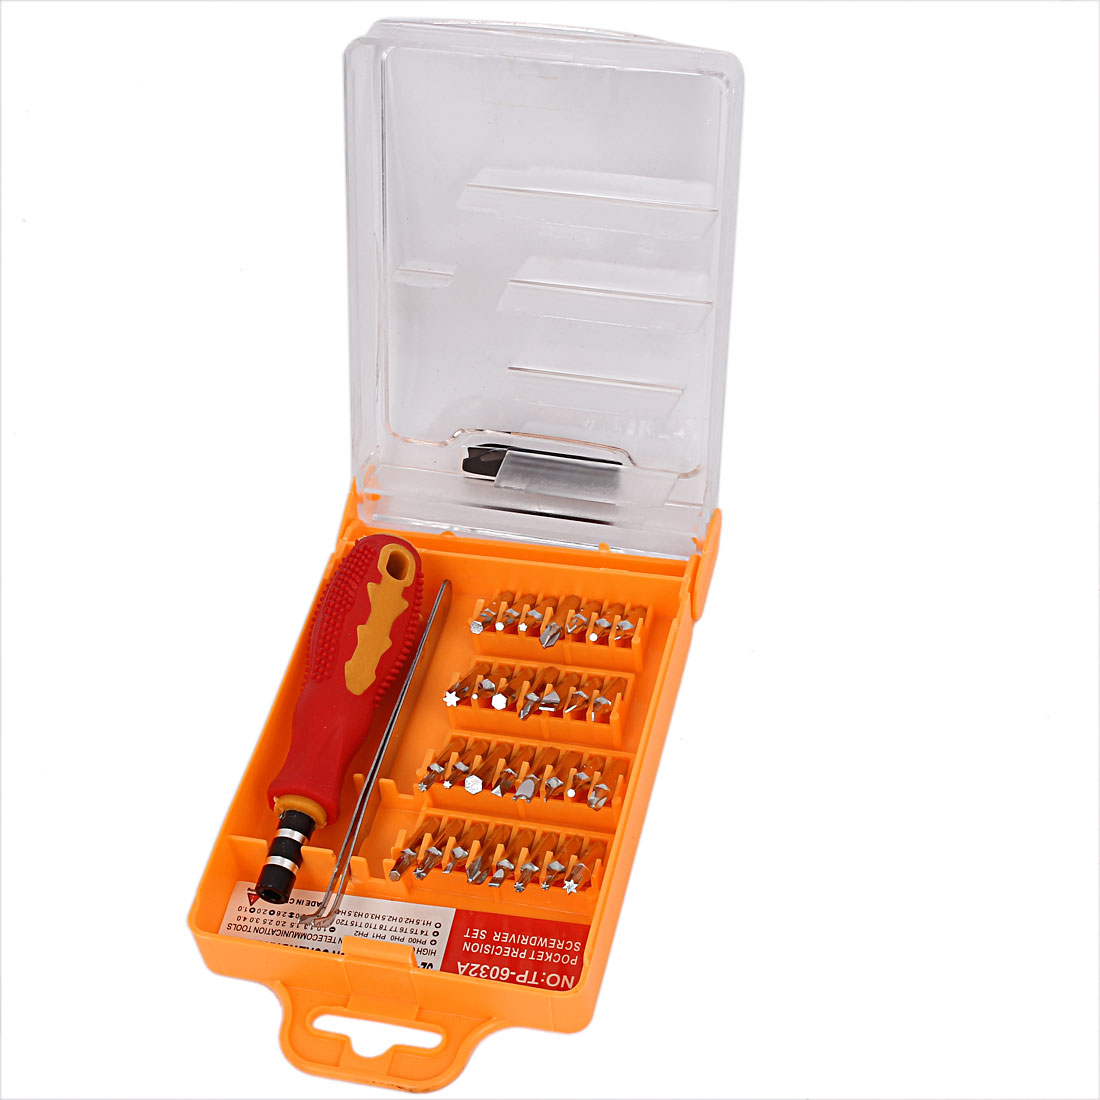 Portable Nonslip Handle Electronic Screwdriver Set Tool TP-6032A 32 in 1